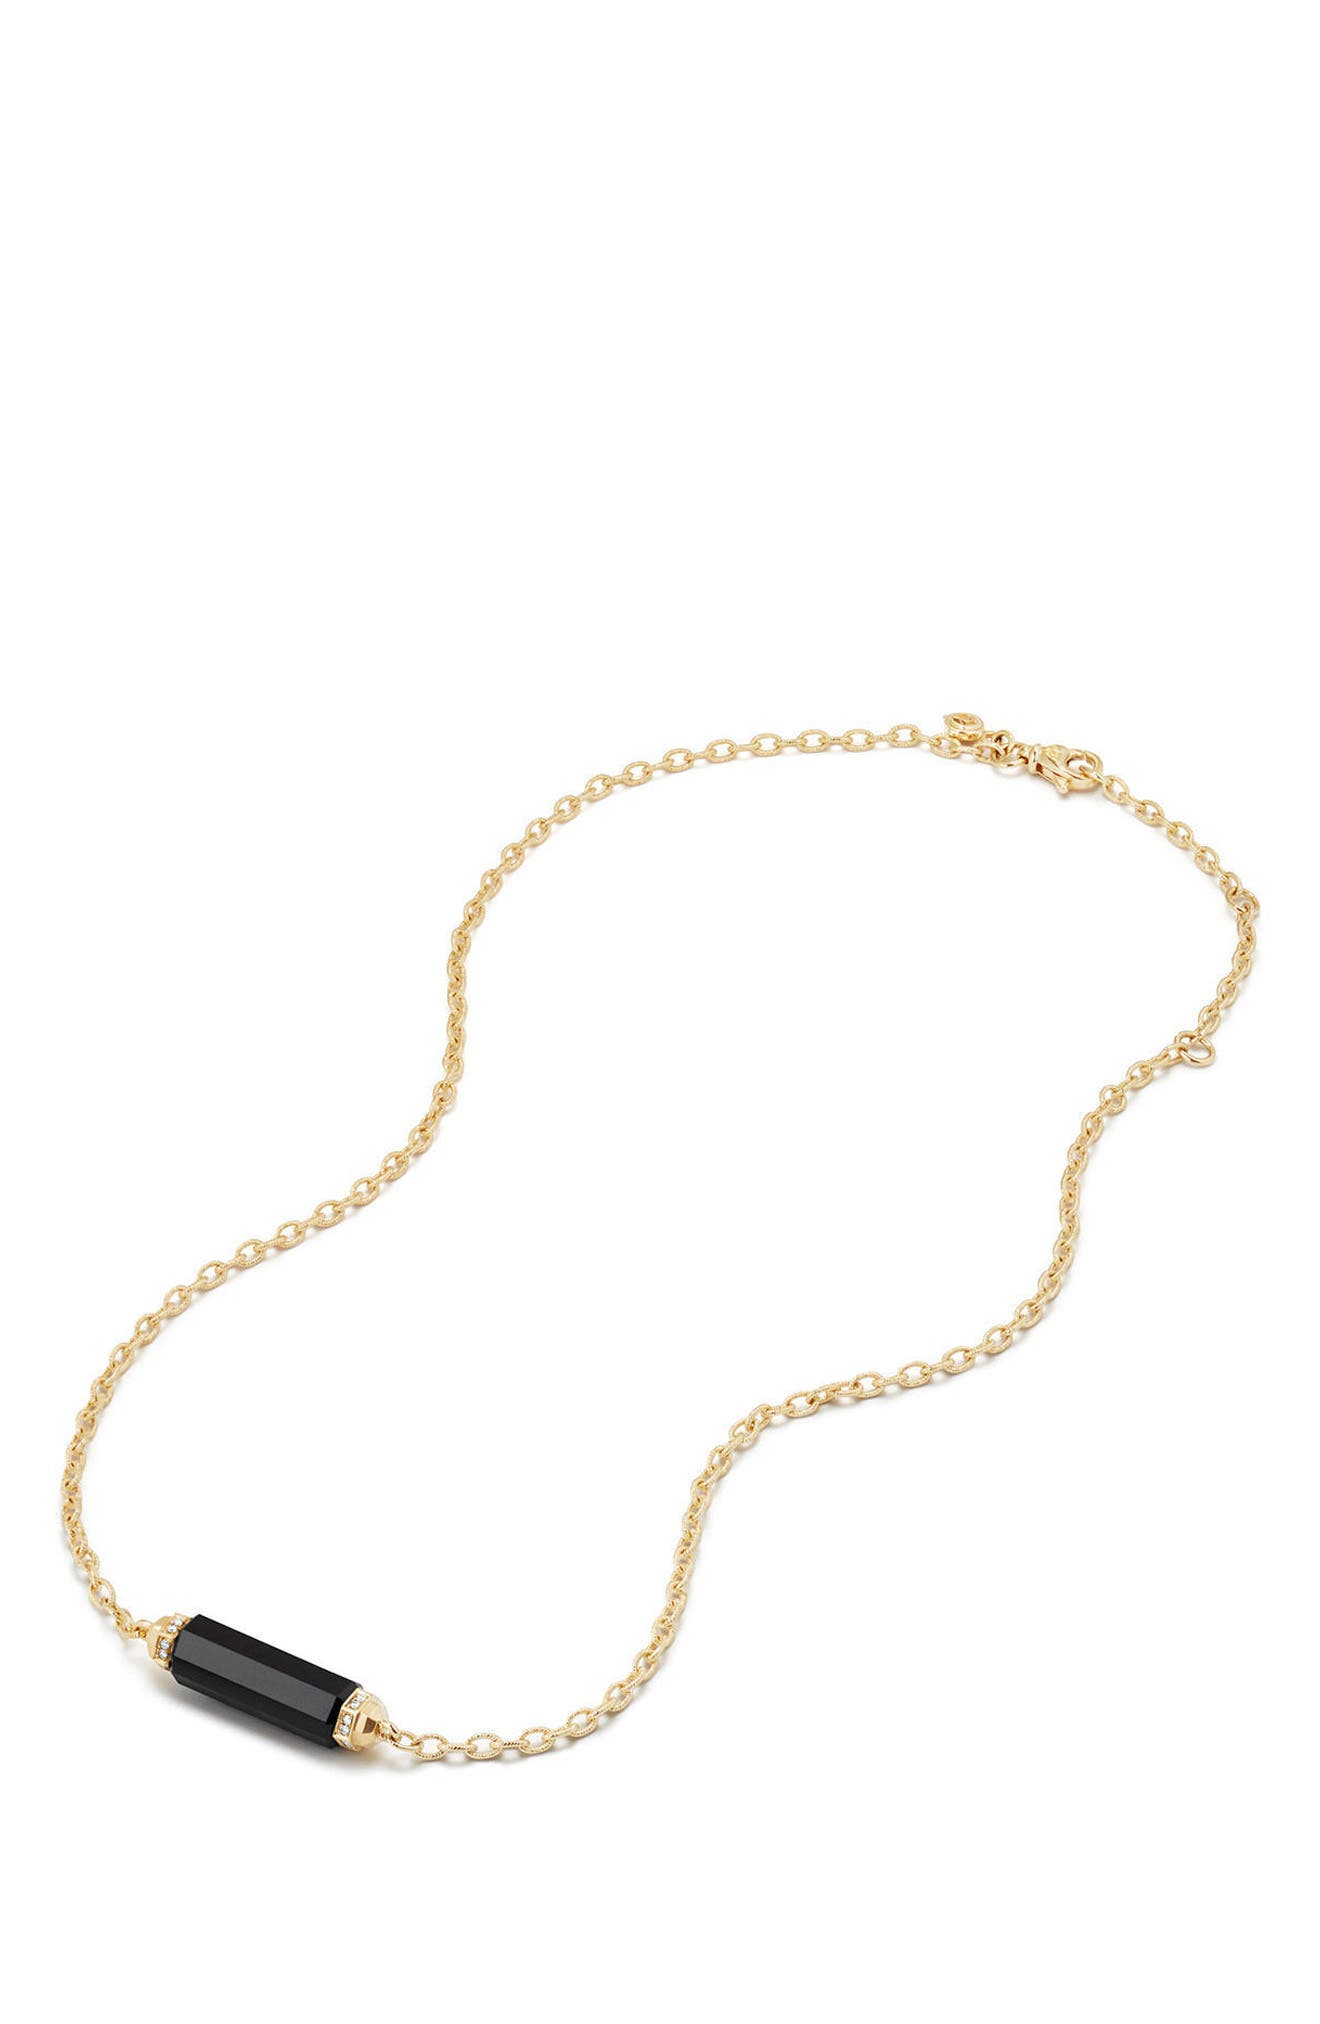 Barrels Single Station Necklace with Diamonds in 18K Gold,                             Alternate thumbnail 2, color,                             BLACK ONYX